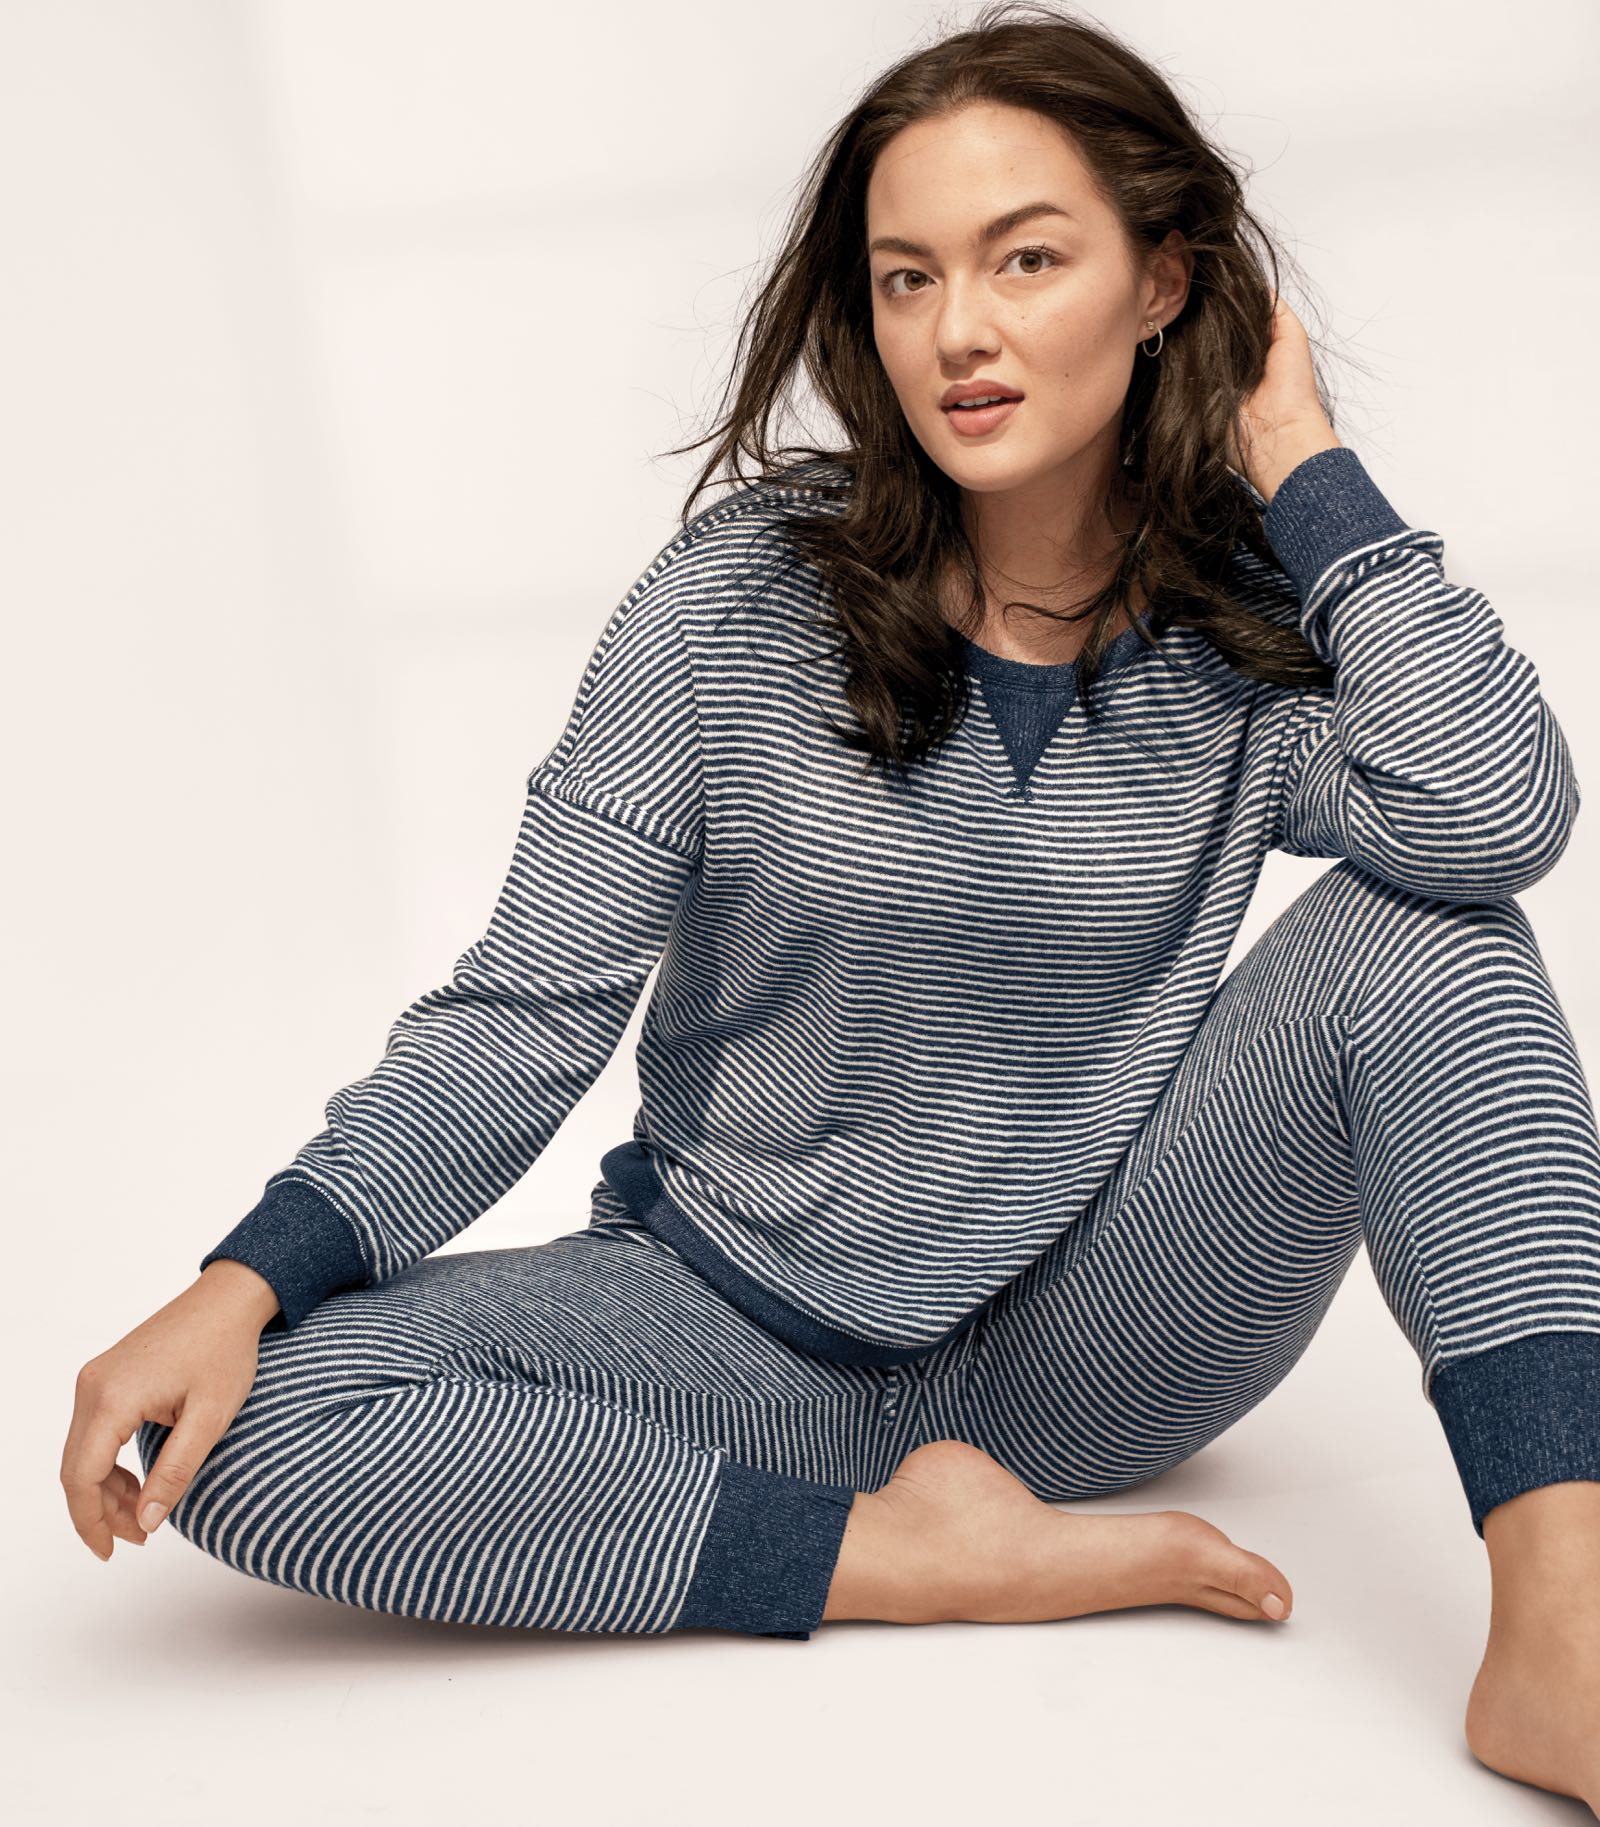 Target is introducing three new, size-inclusive brands for lounge/sleepwear and intimates